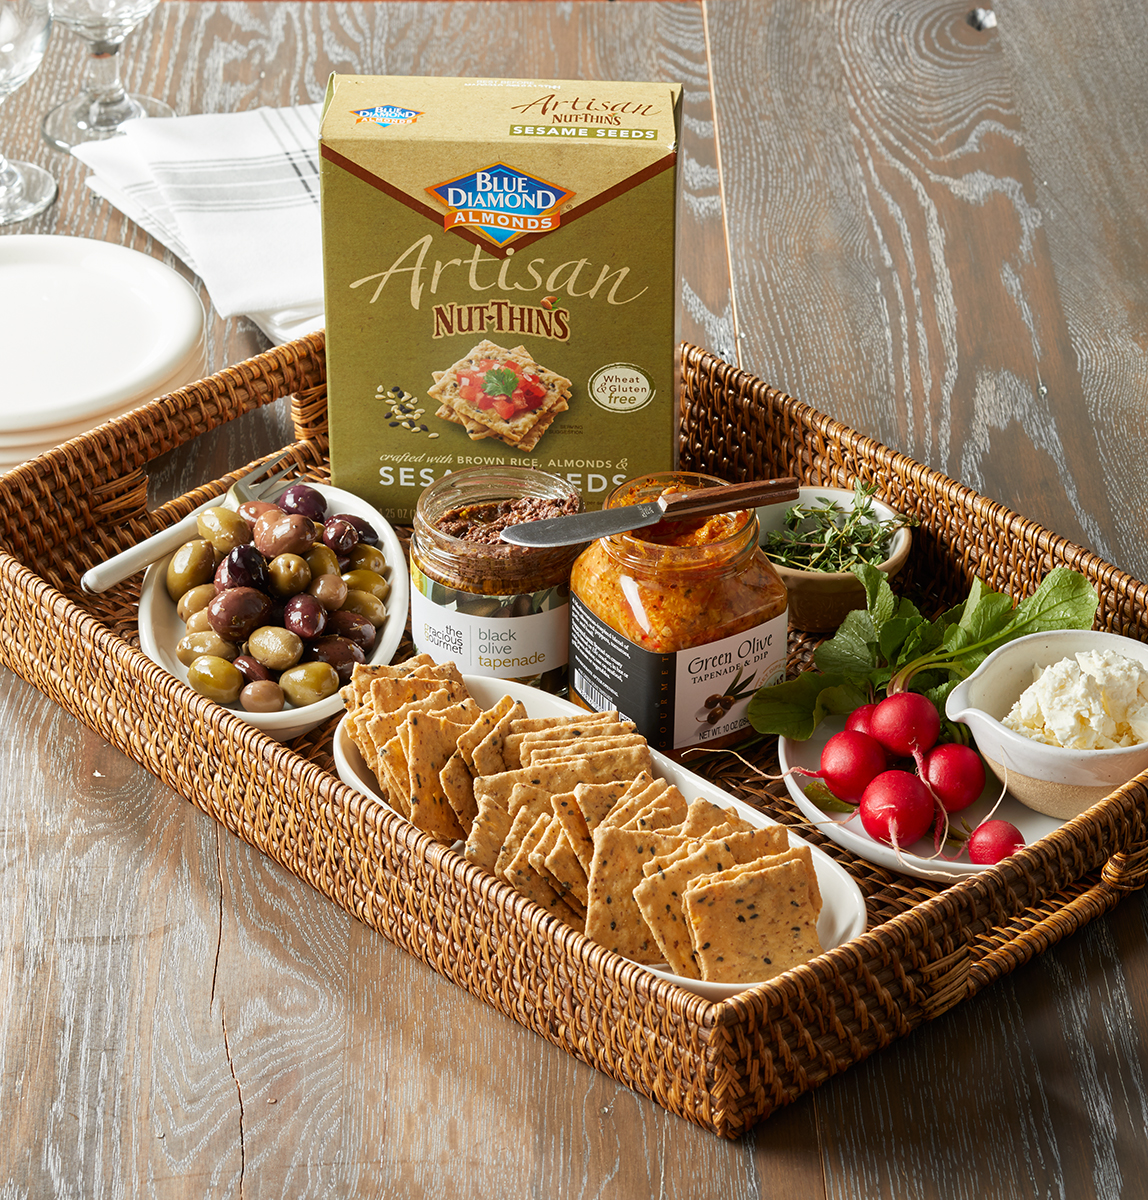 wicker tray with dishes of snacks artisan nut-thins and spreads